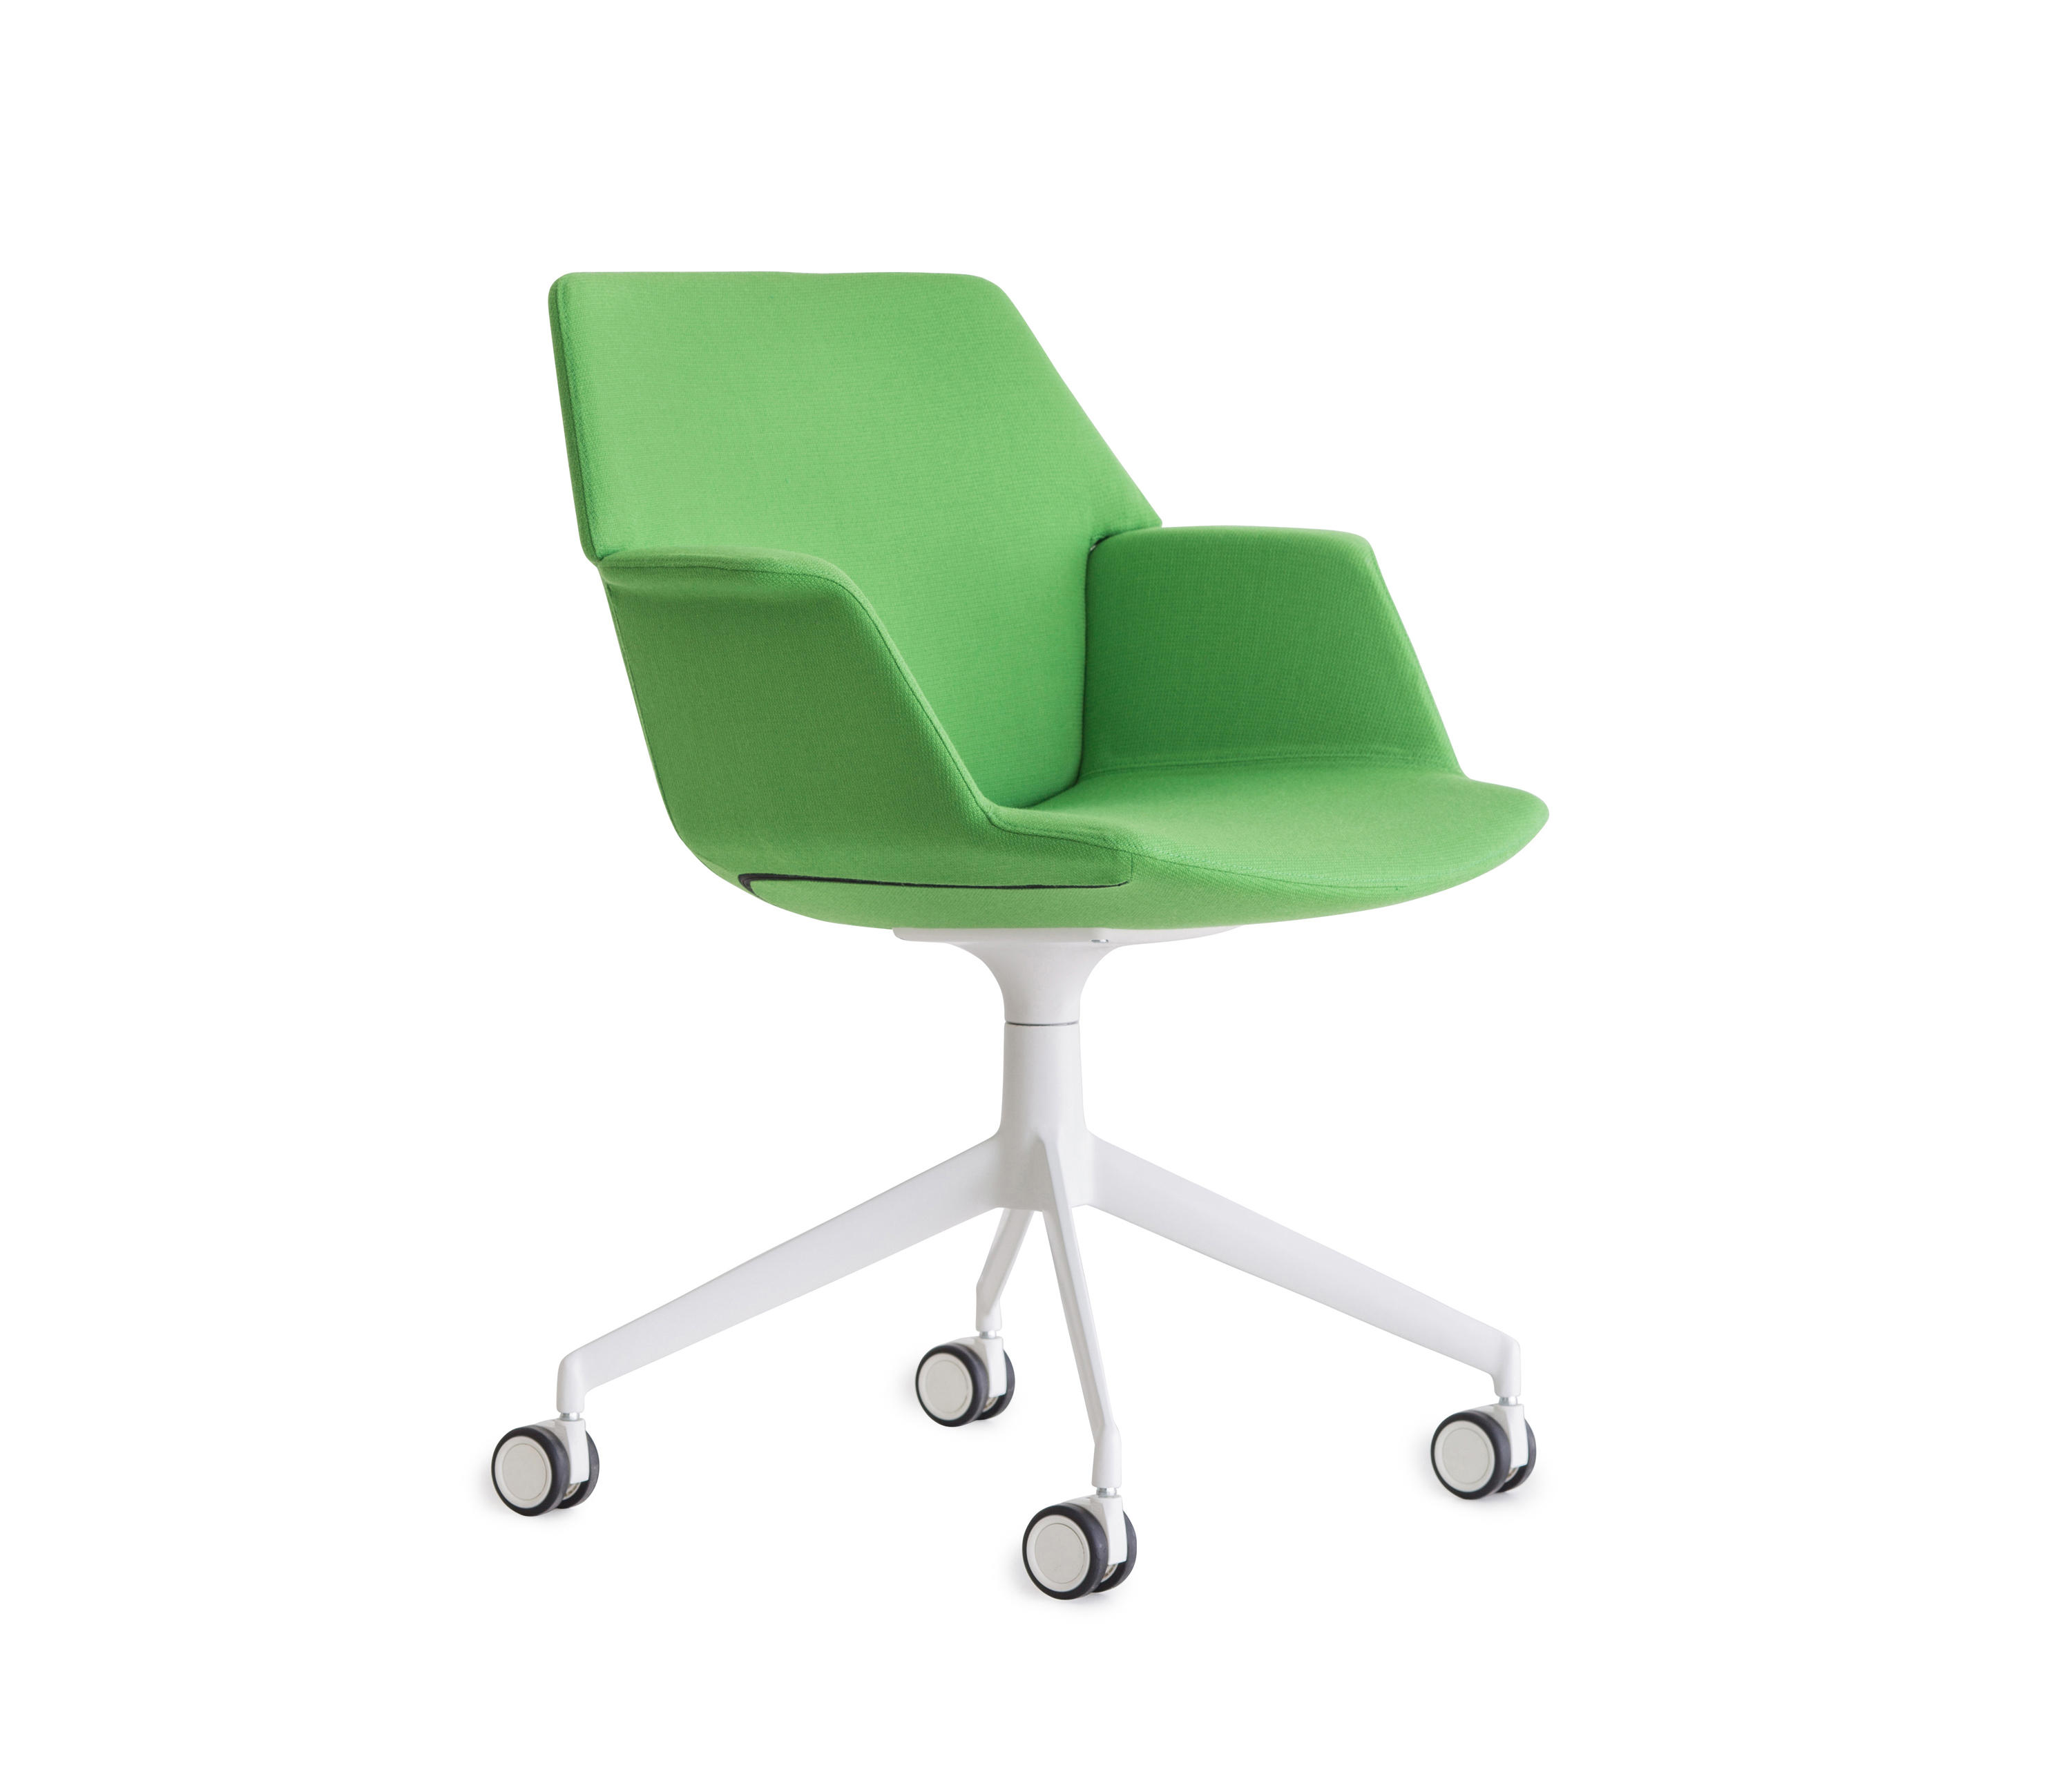 UNO - Chairs from lapalma | Architonic